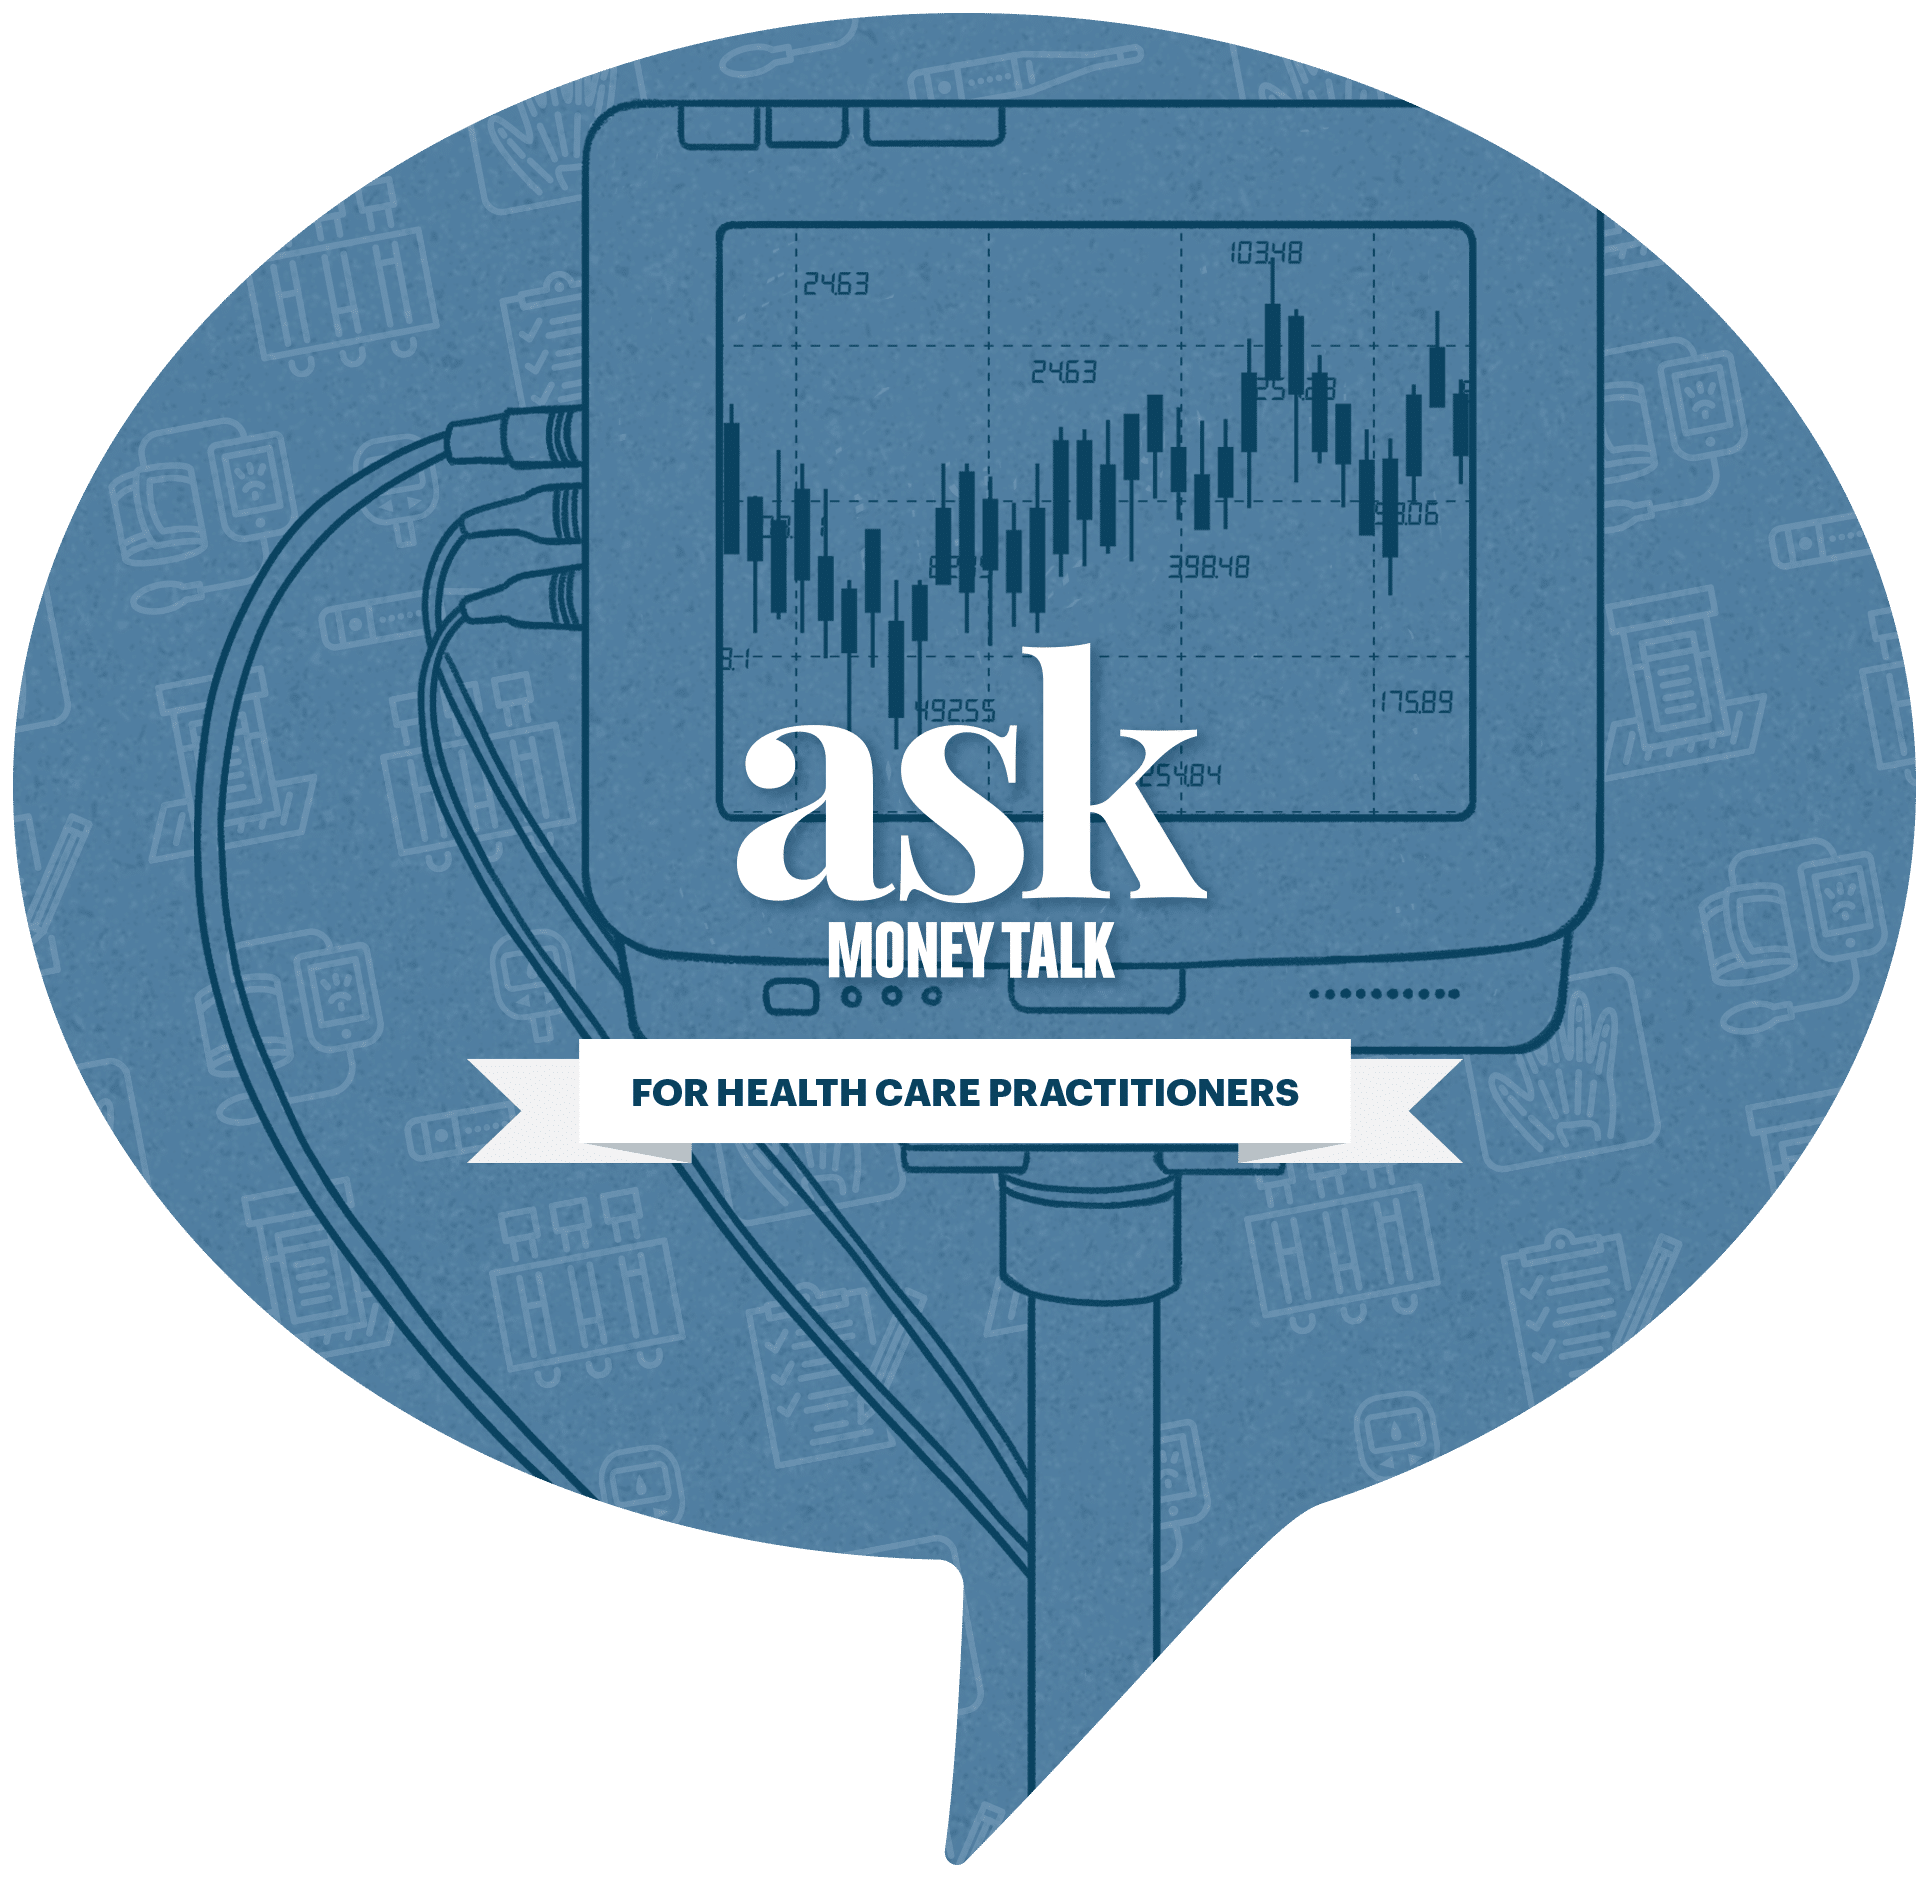 Ask MoneyTalk logo with a health monitor from a doctors office.